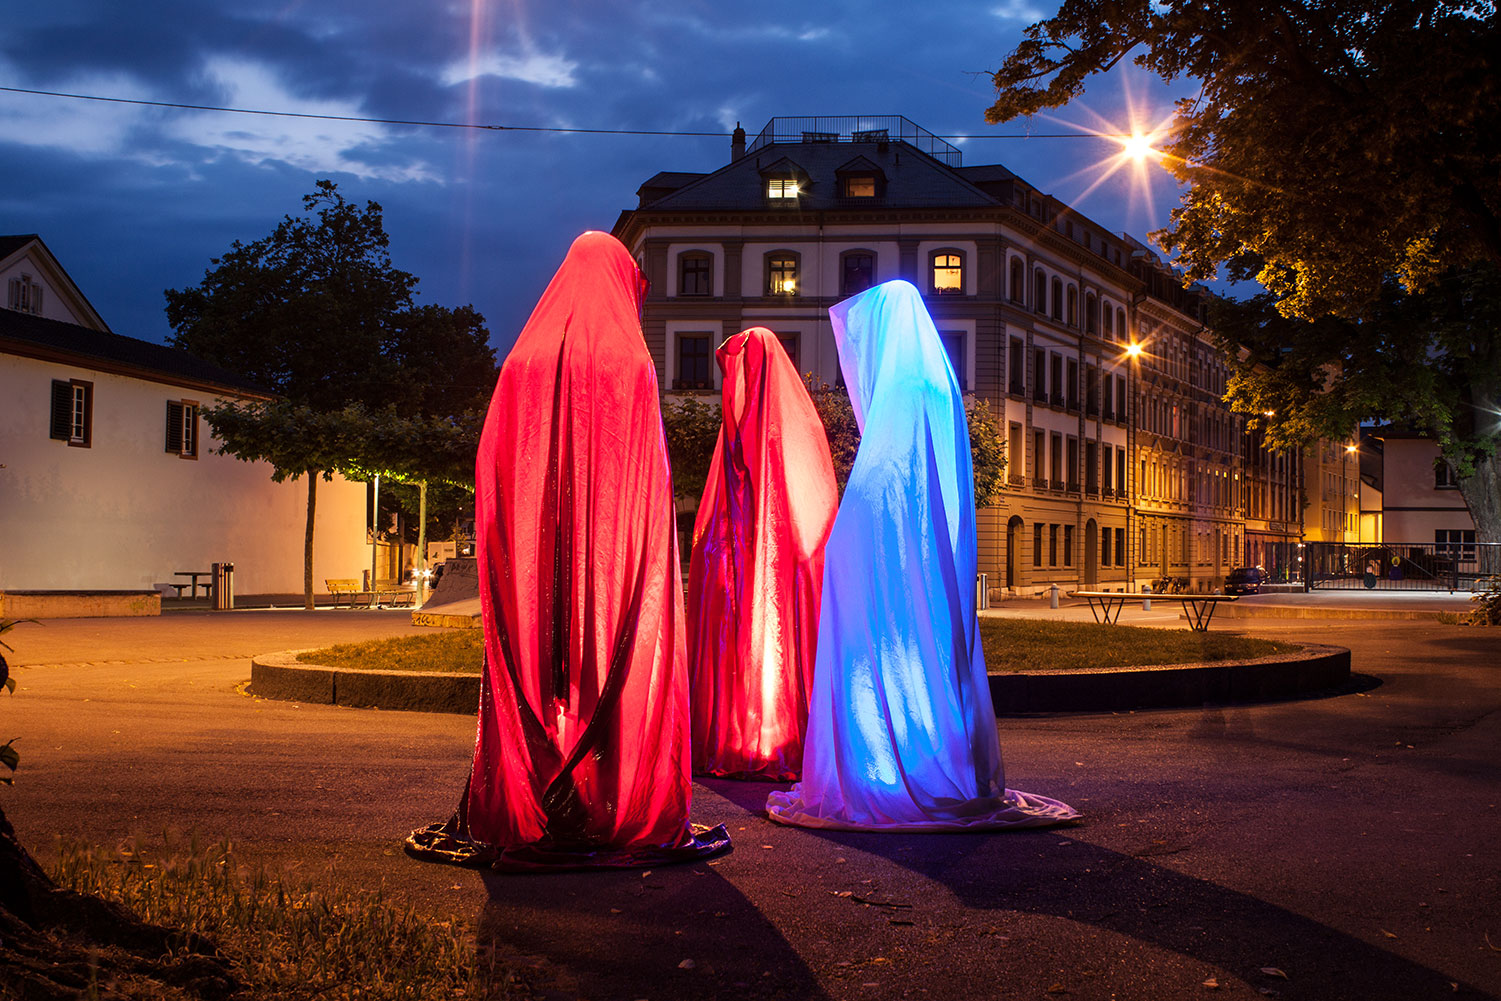 highlights-public-artbasel-scope-art-show-guardians-of-time-manfred-kielnhofer-steinreich-contemporary-art-sculpture-tour-art-parcours-1483